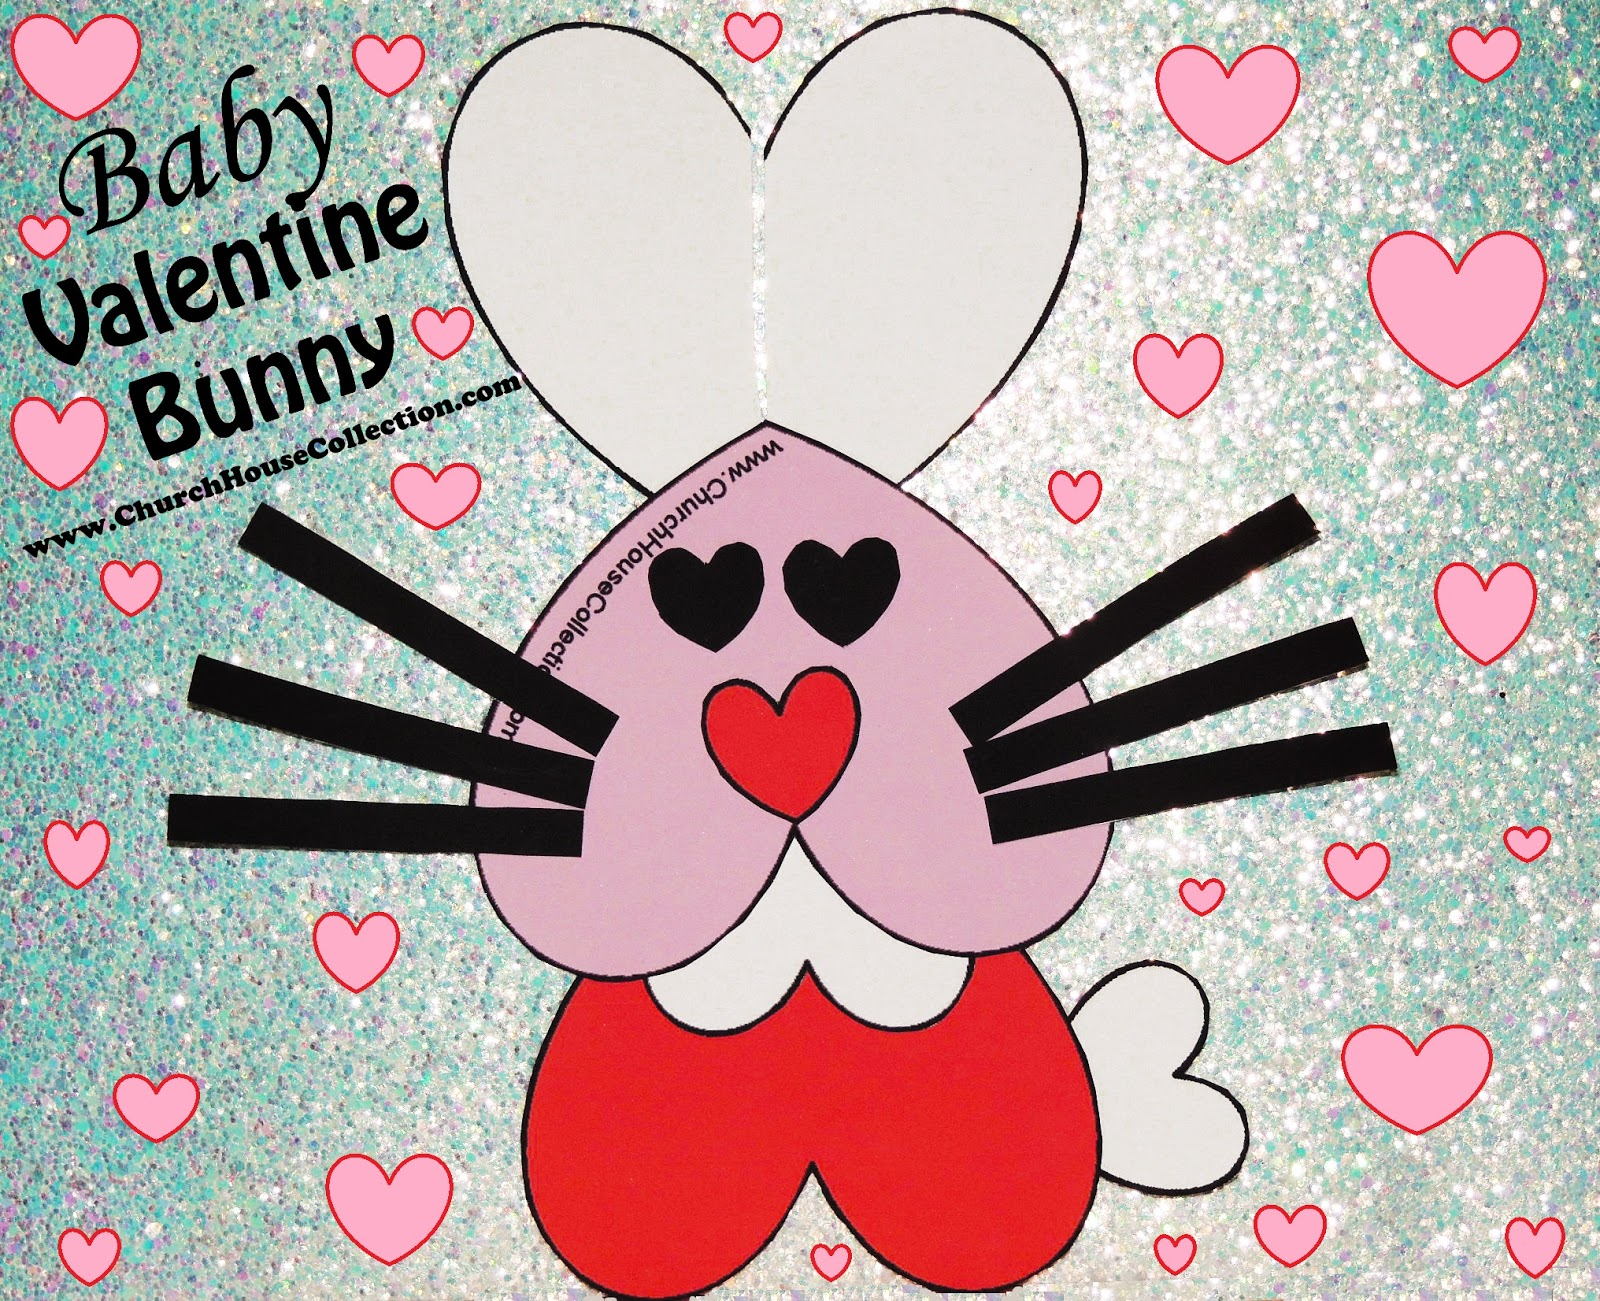 Church House Collection Blog Baby Valentine Bunny Valentine S Day Heart Rabbit Crafts For Kids